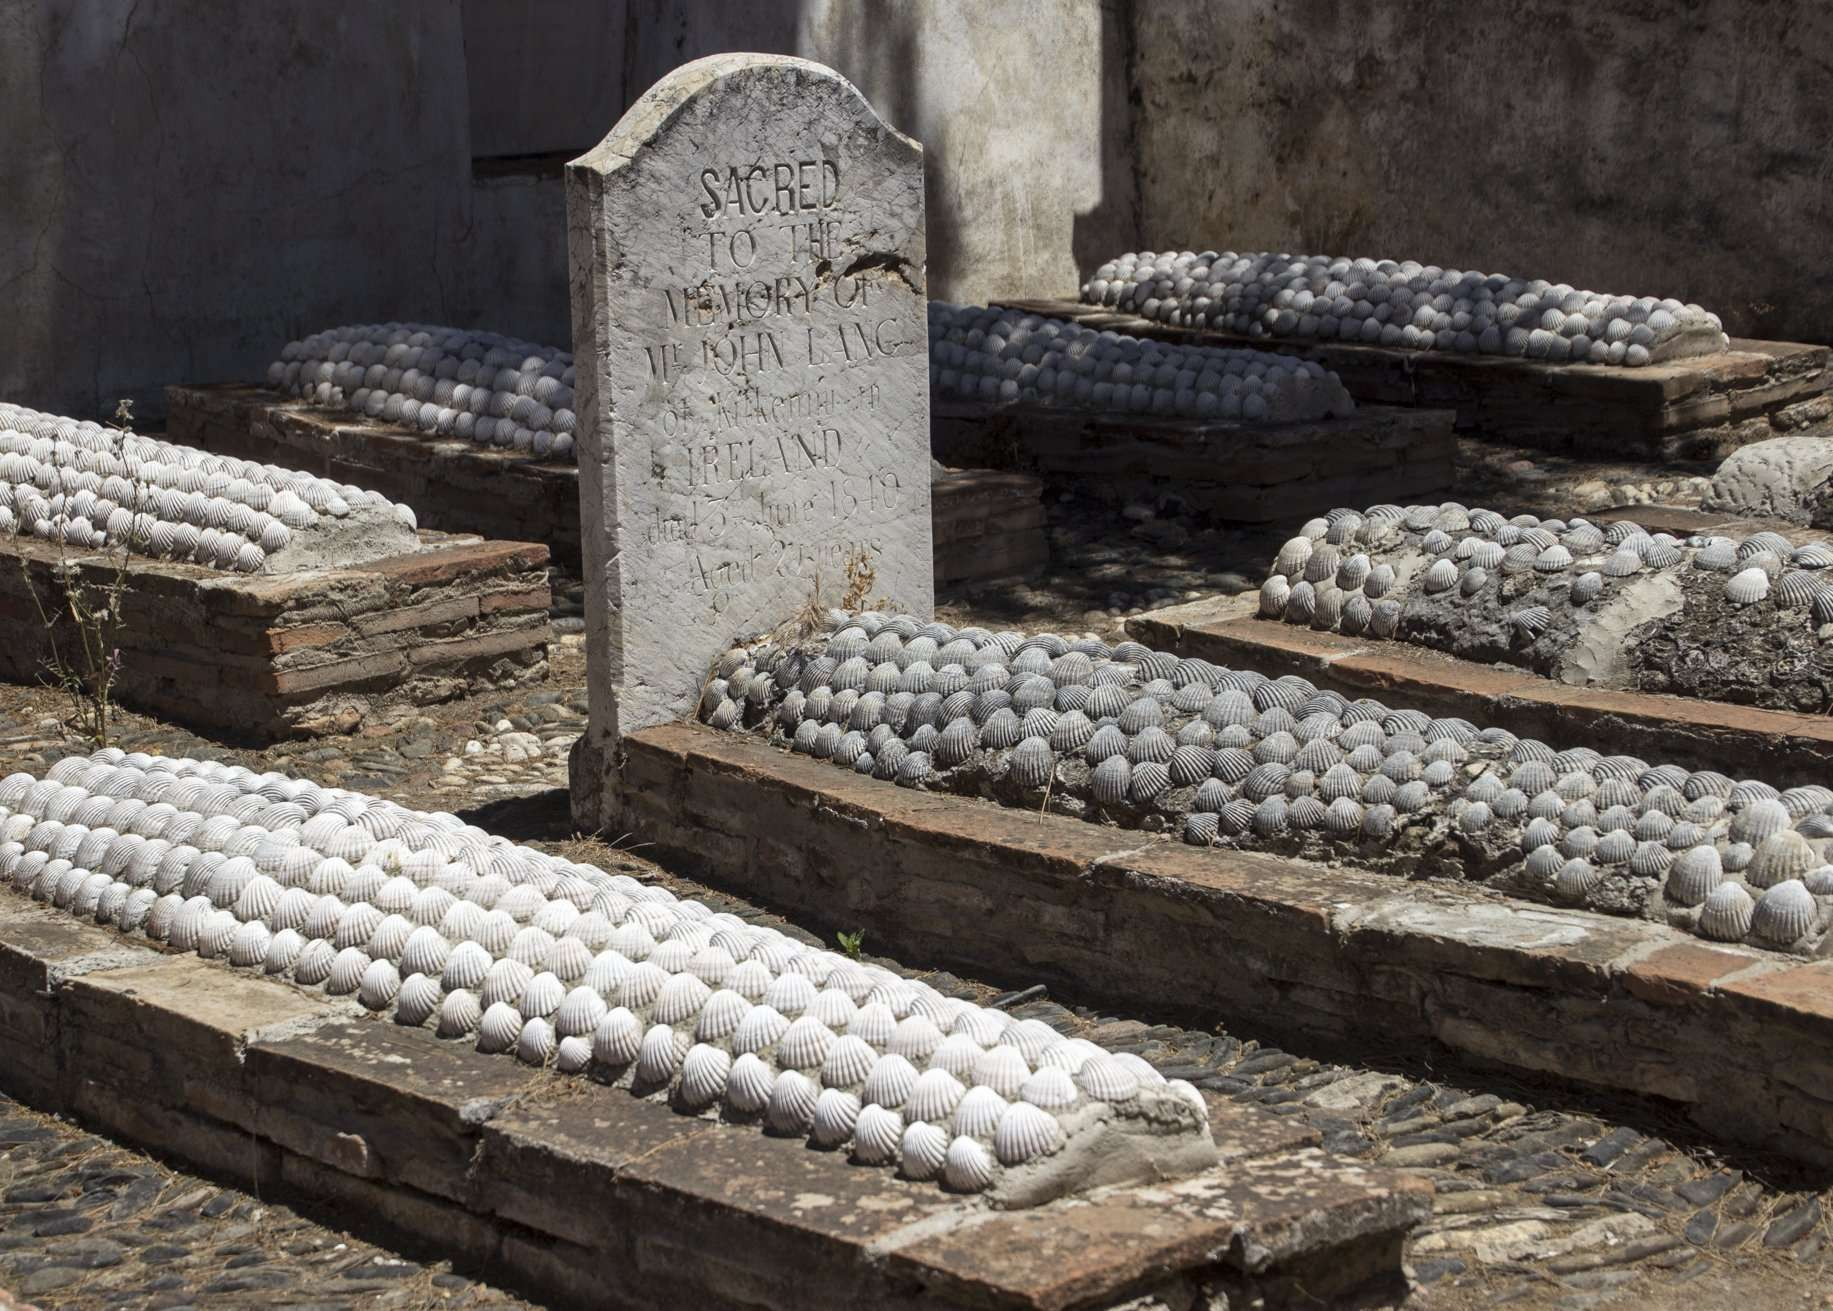 Things to do in Malaga: visit the oldest Protestant Cemetery in Spain